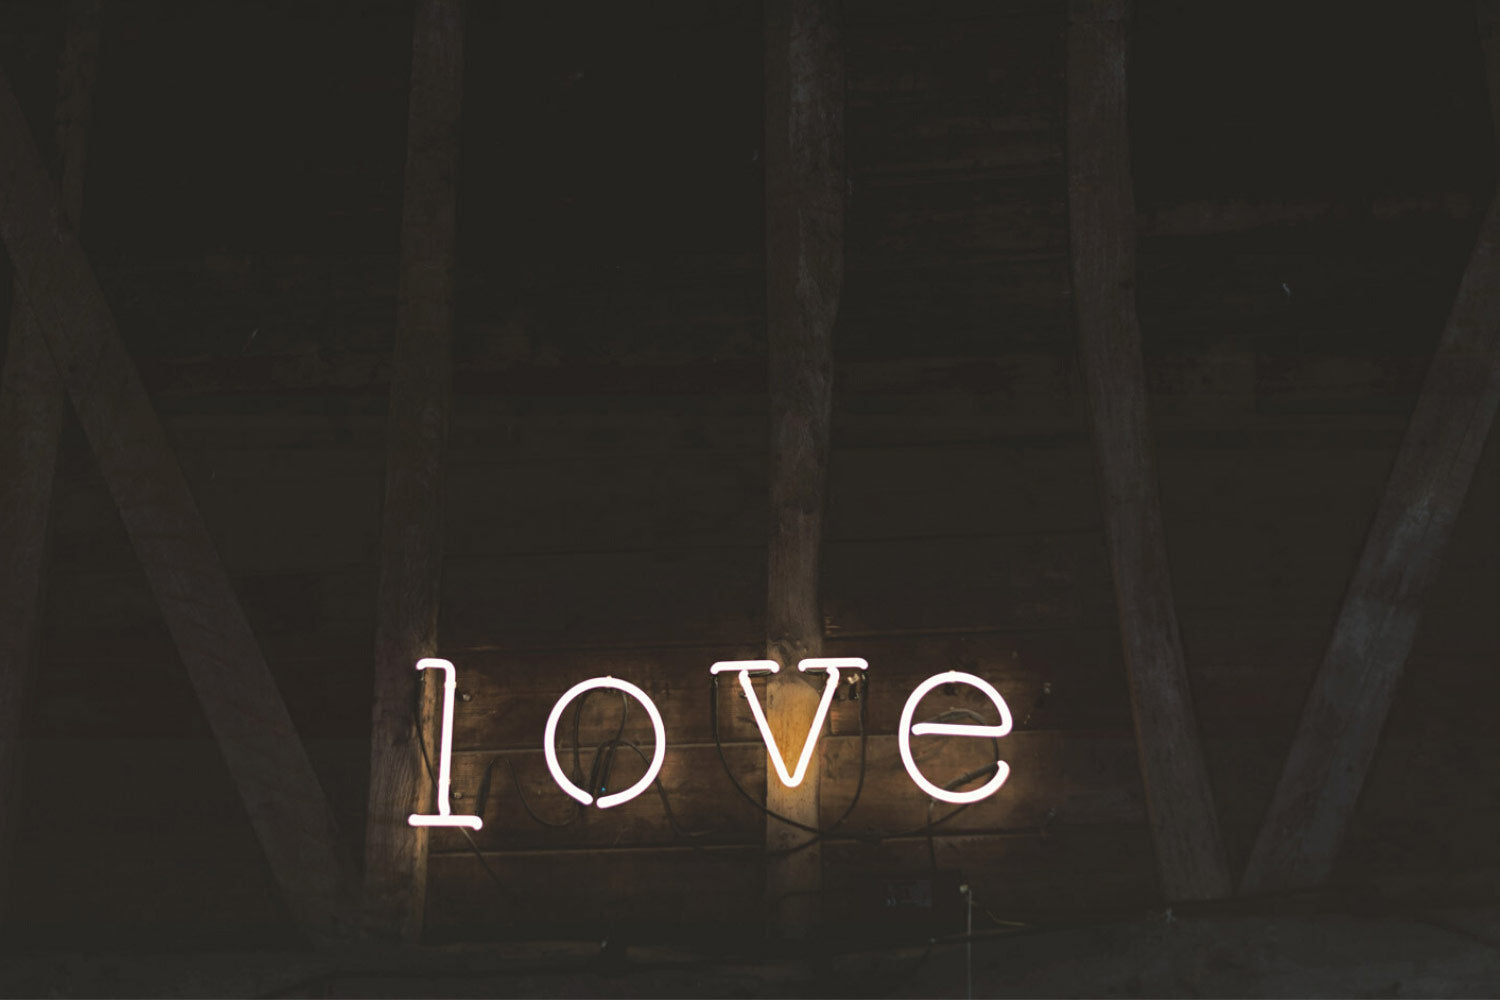 neon letters spelling out the word love